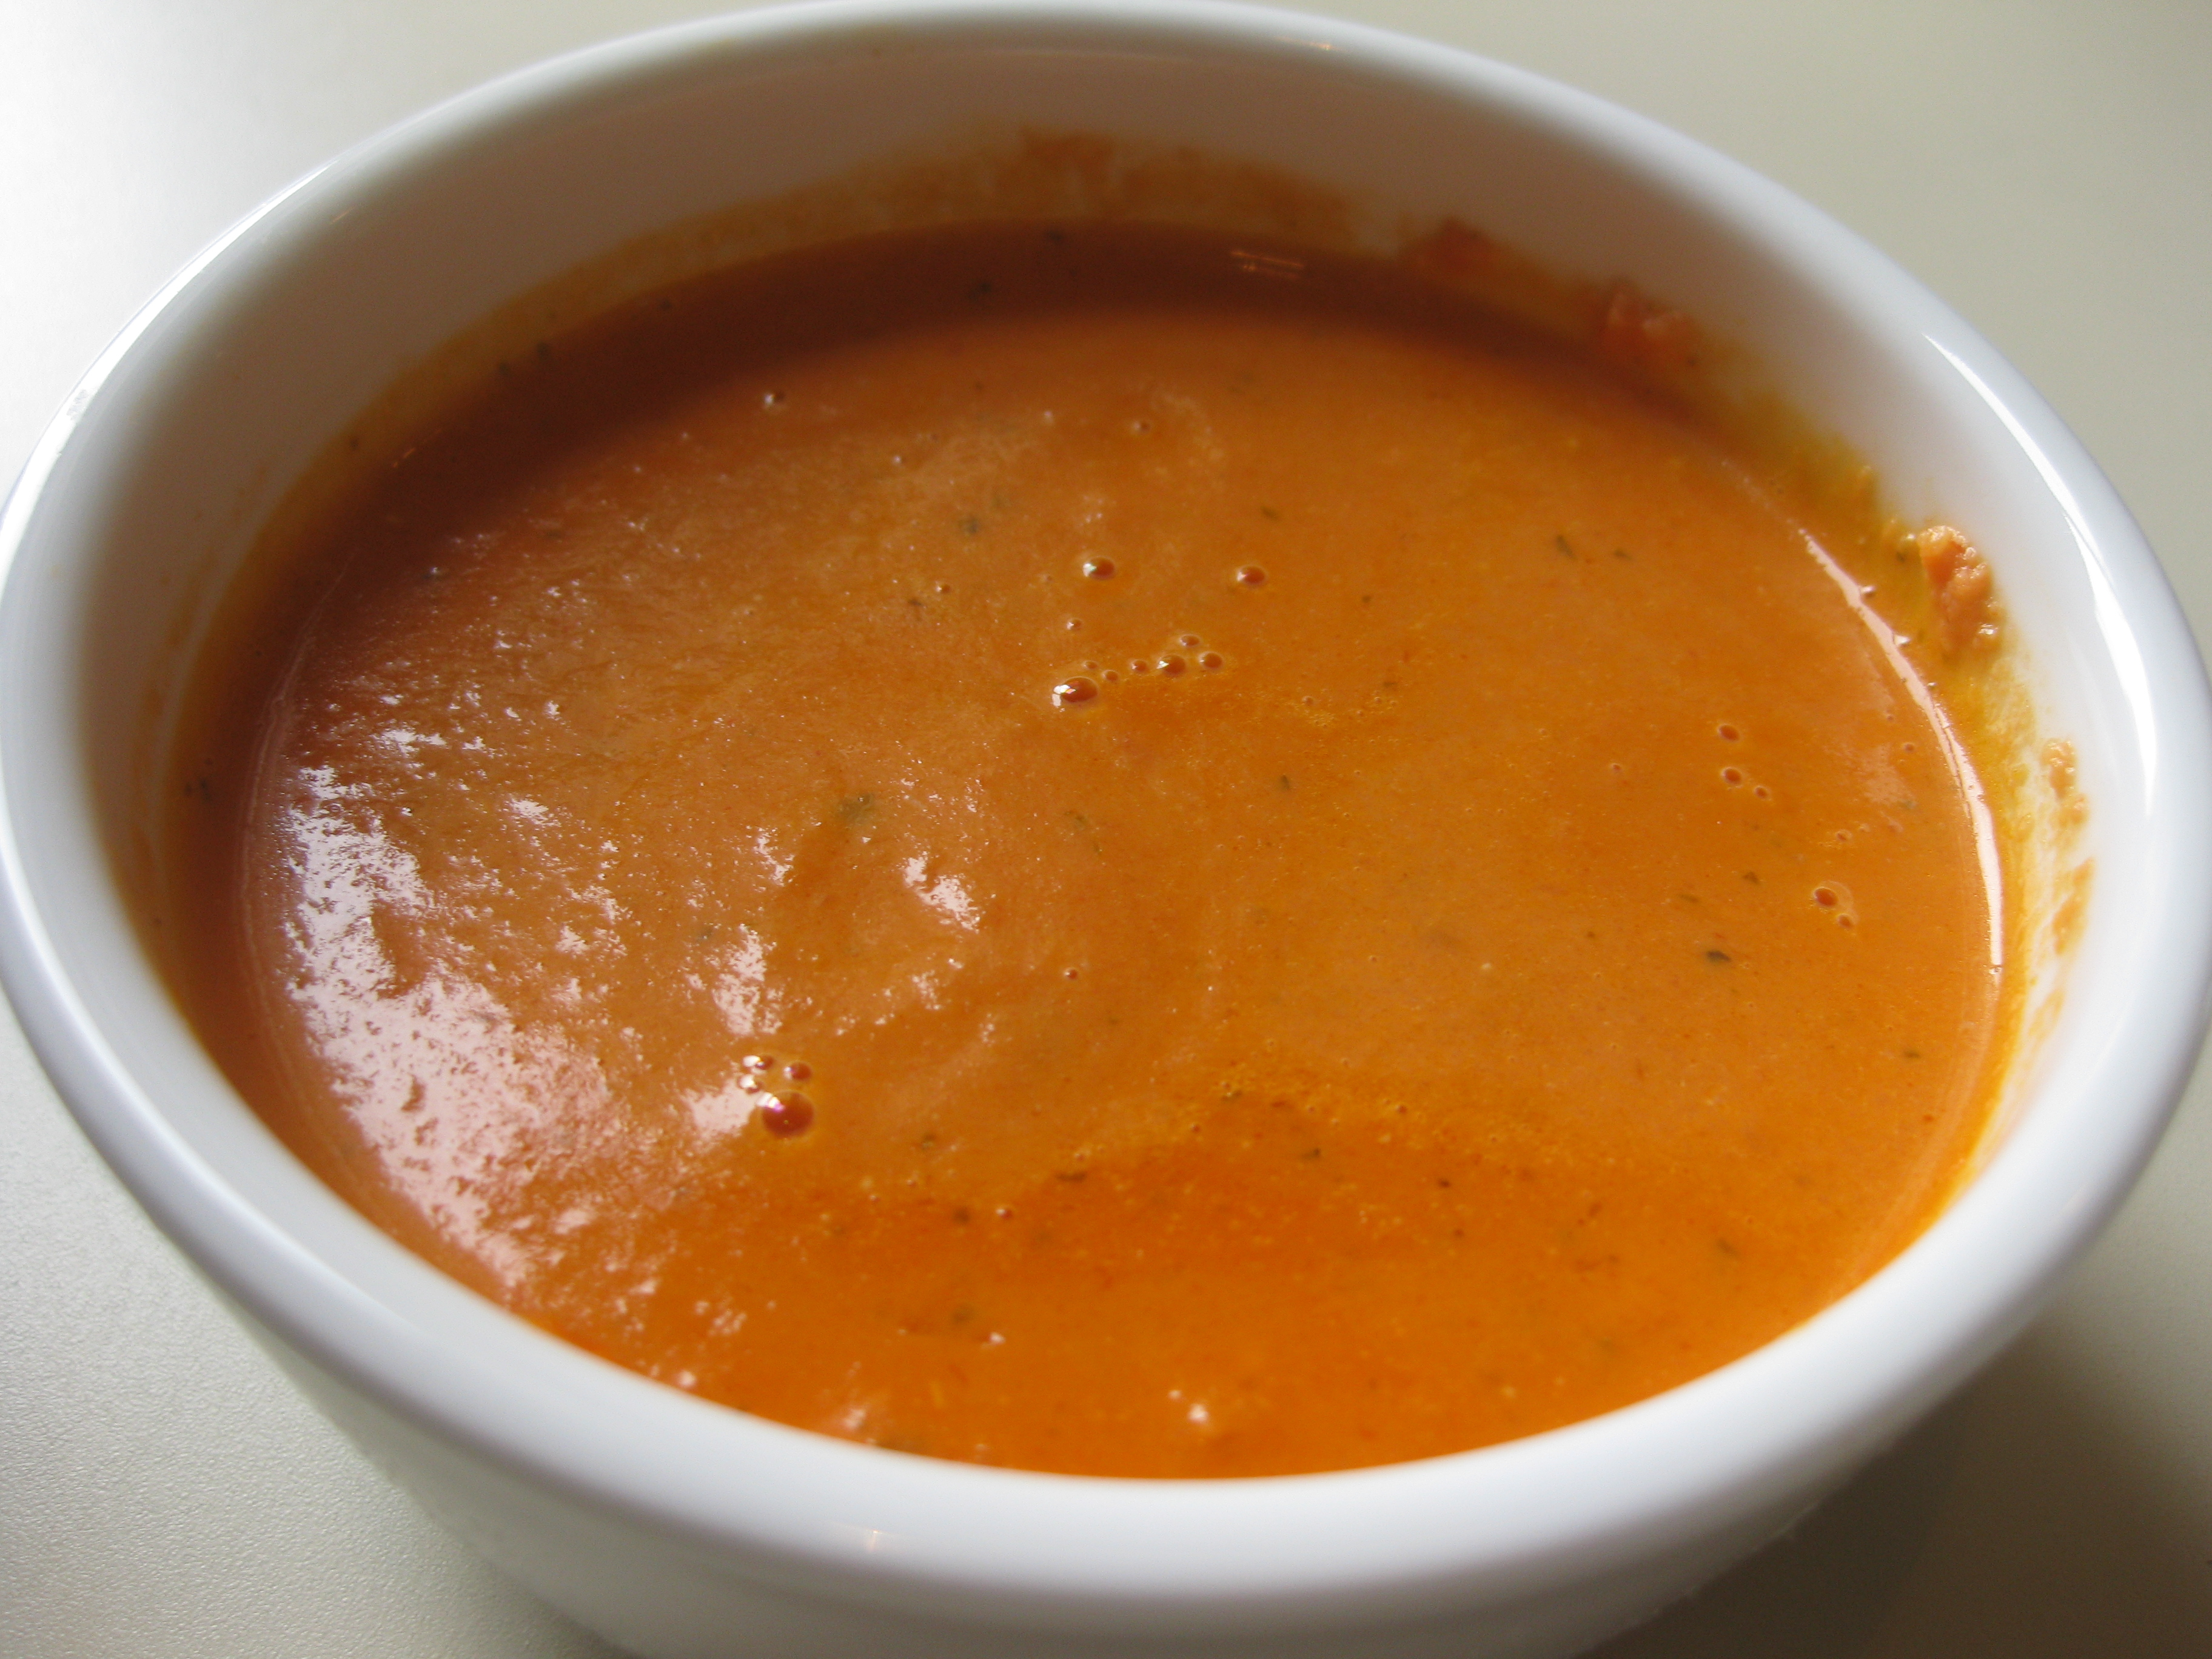 ... symon tomato soup soups tomatoes spicy beer recipes blue cheese